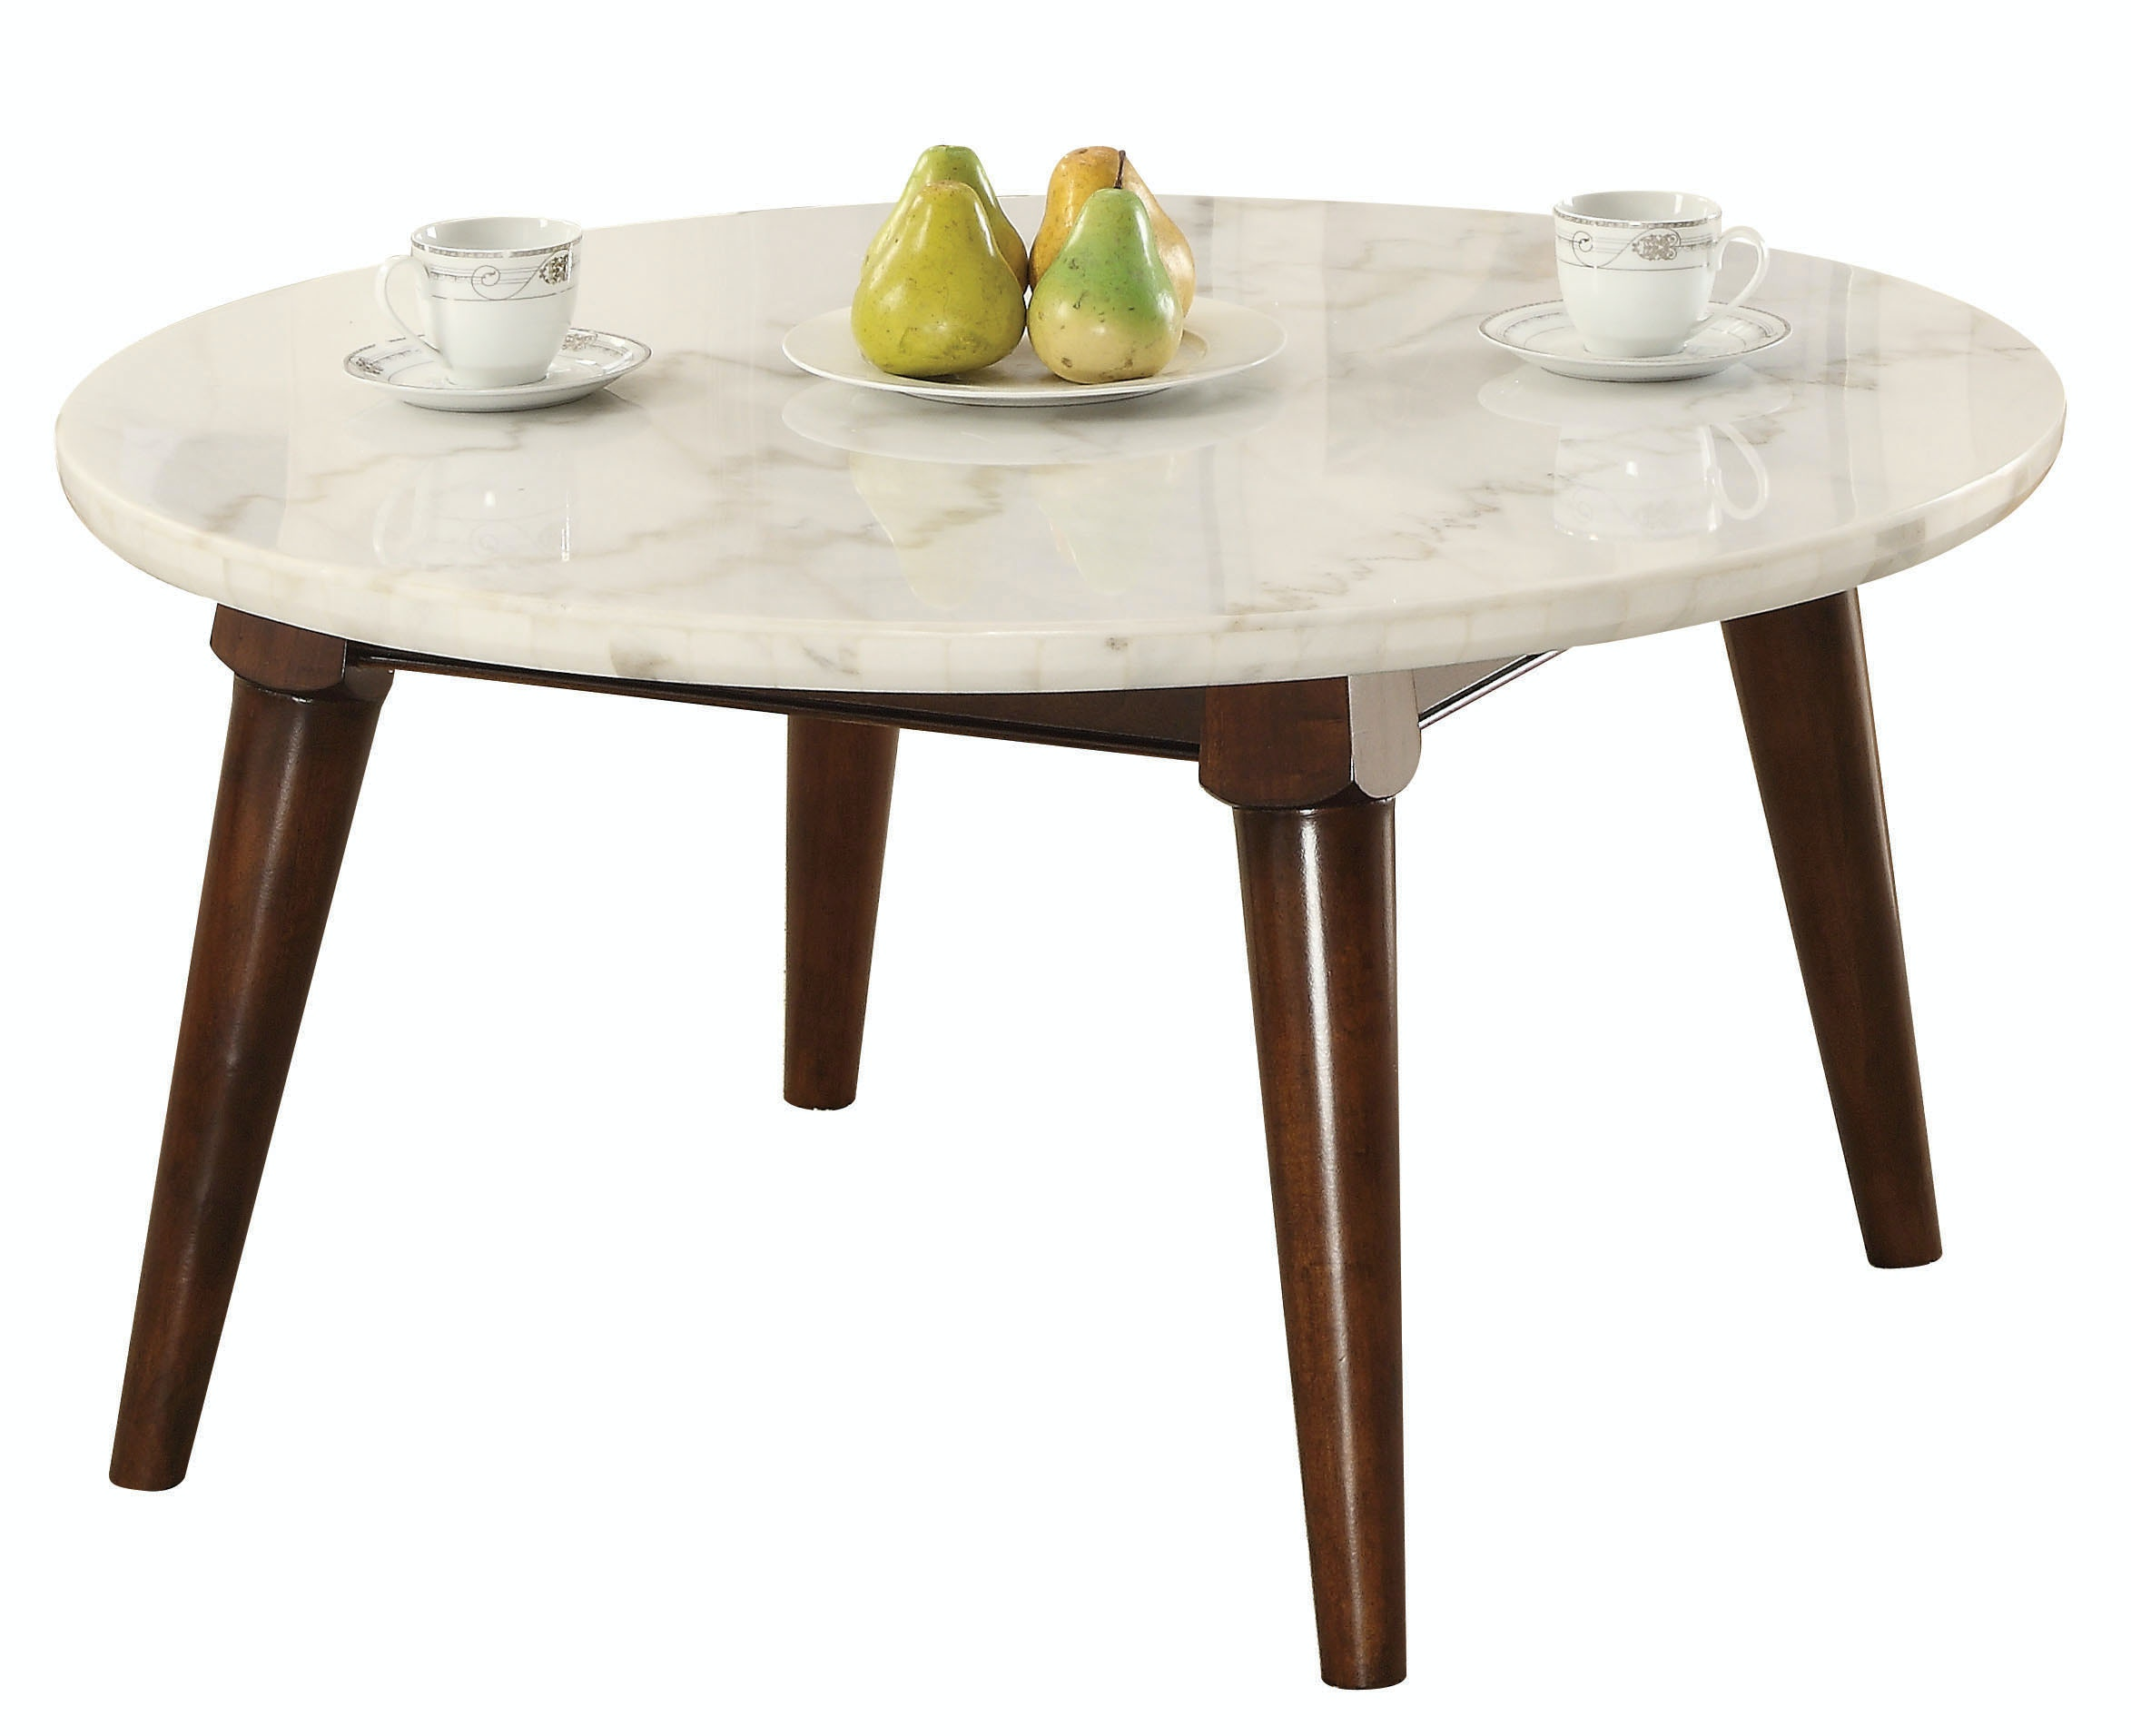 Langlois furniture Clearance Center Acme Furniture Coffee Table 82890 Skiepaiinfo Acme Furniture Living Room Coffee Table 82890 Barrons Home